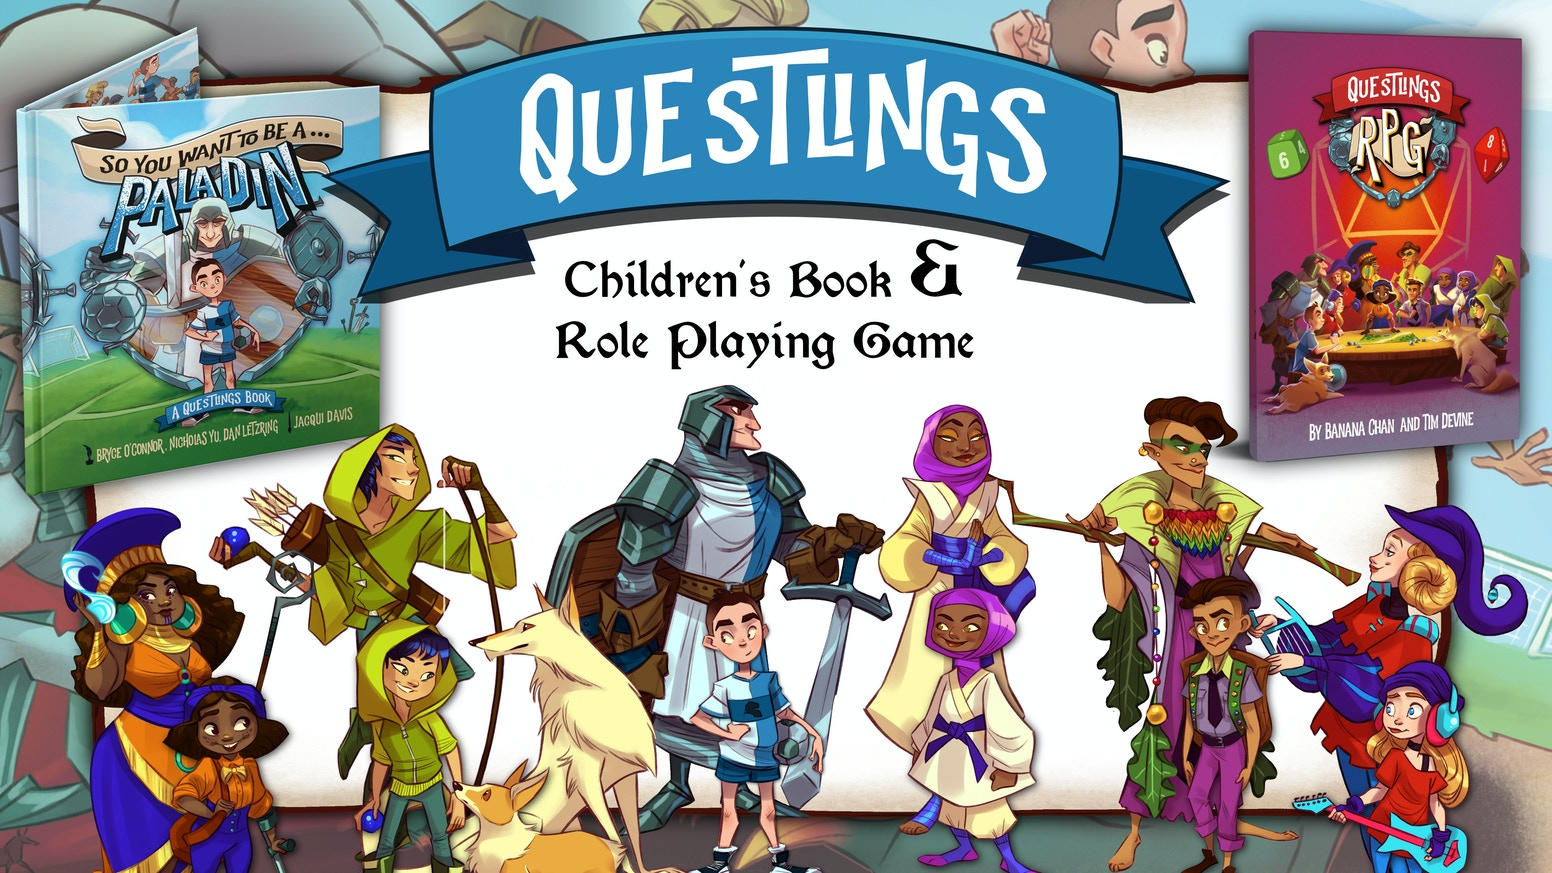 Questlings is an RPG-inspired children's book series and RPG game system about finding your Inner Hero.